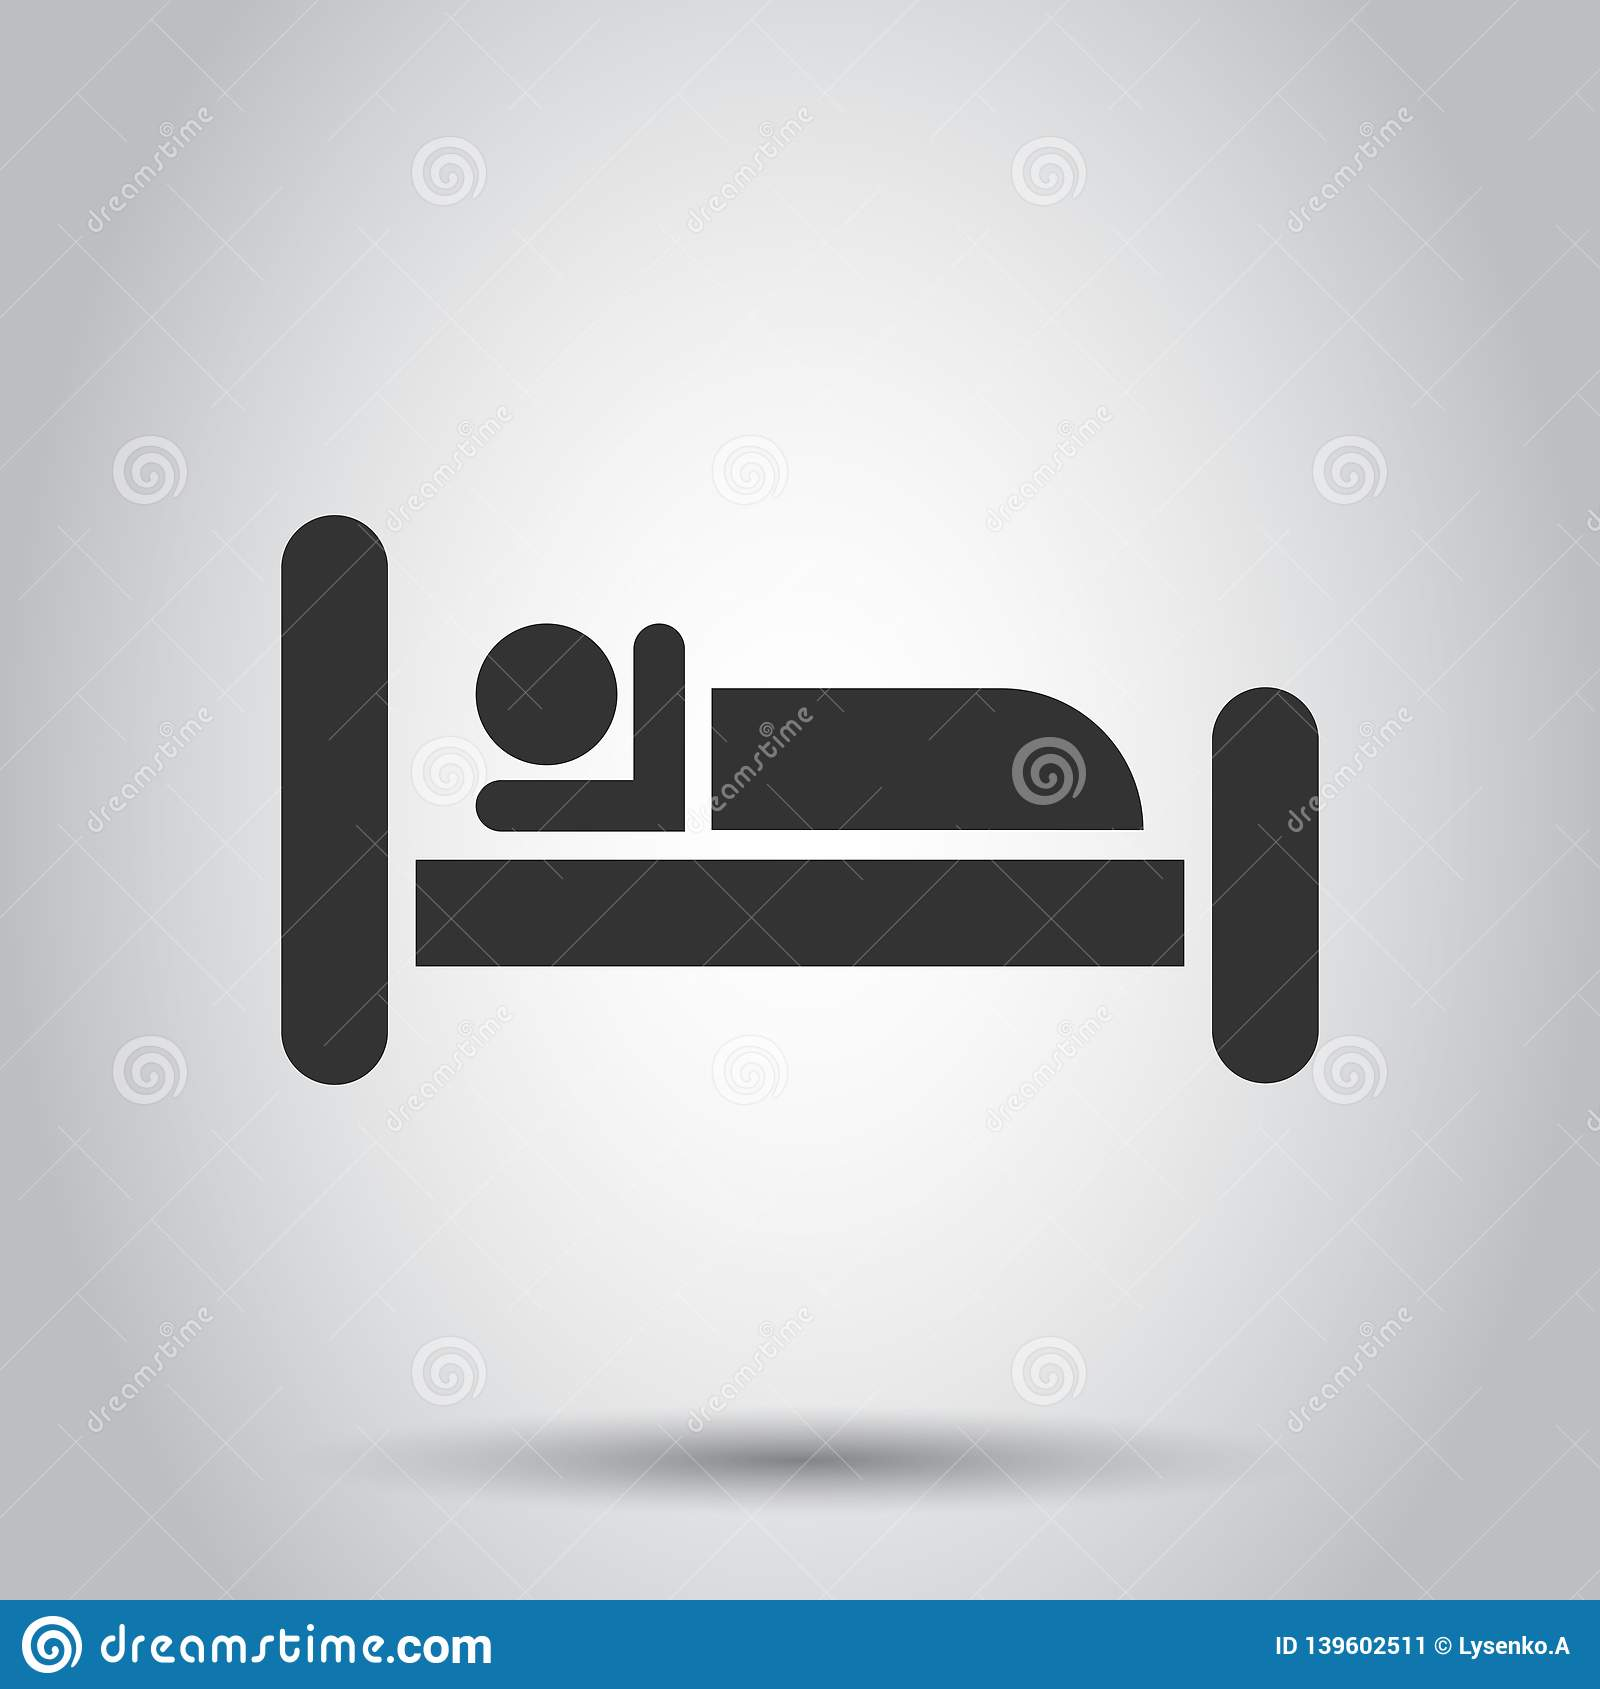 Bed Icon In Flat Style Sleep Bedroom Vector Illustration On White